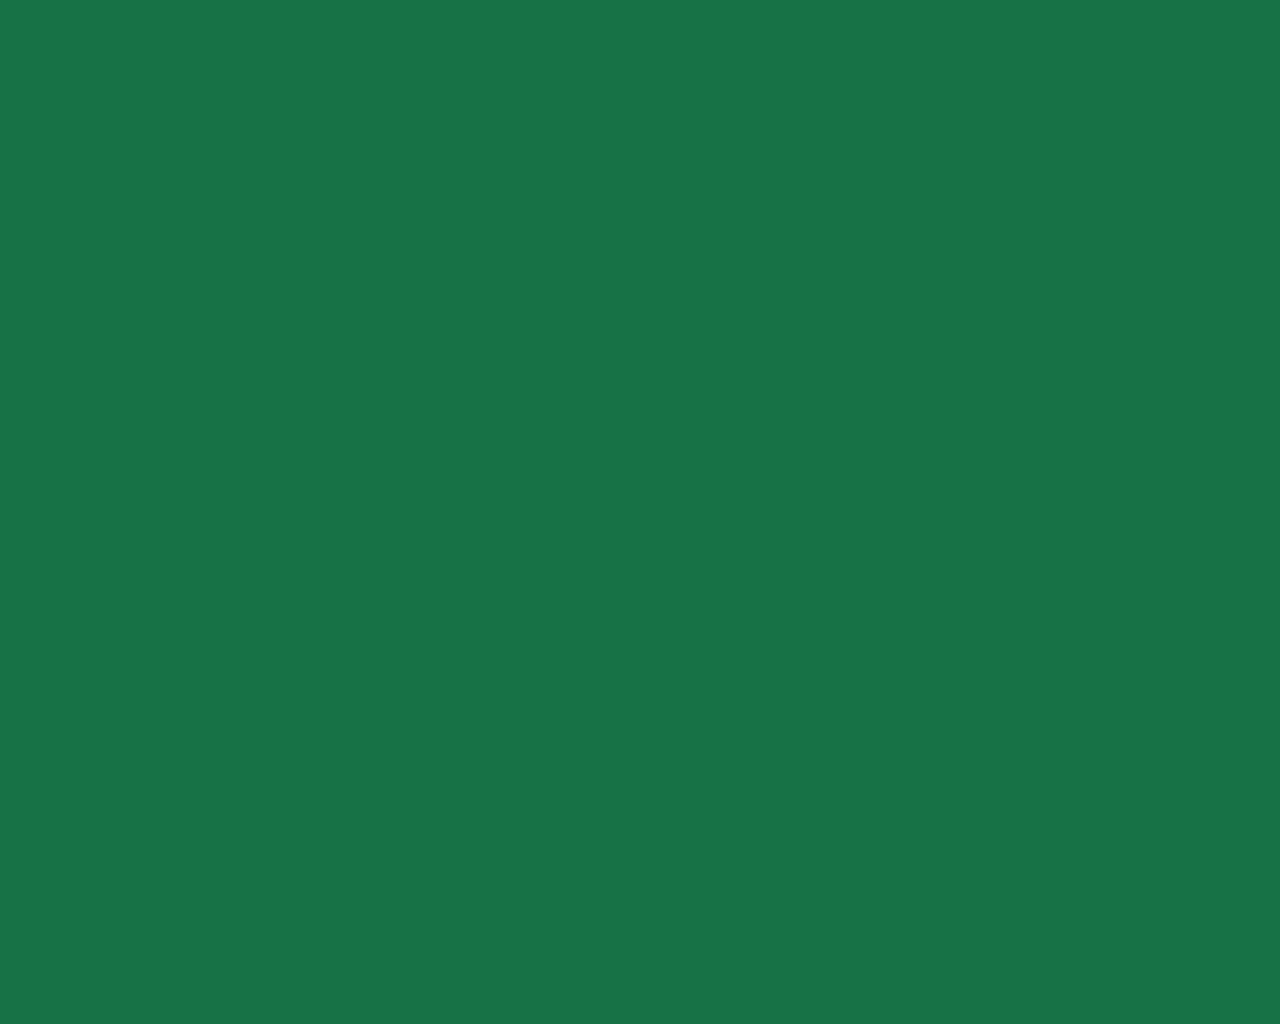 1280x1024 Dark Spring Green Solid Color Background